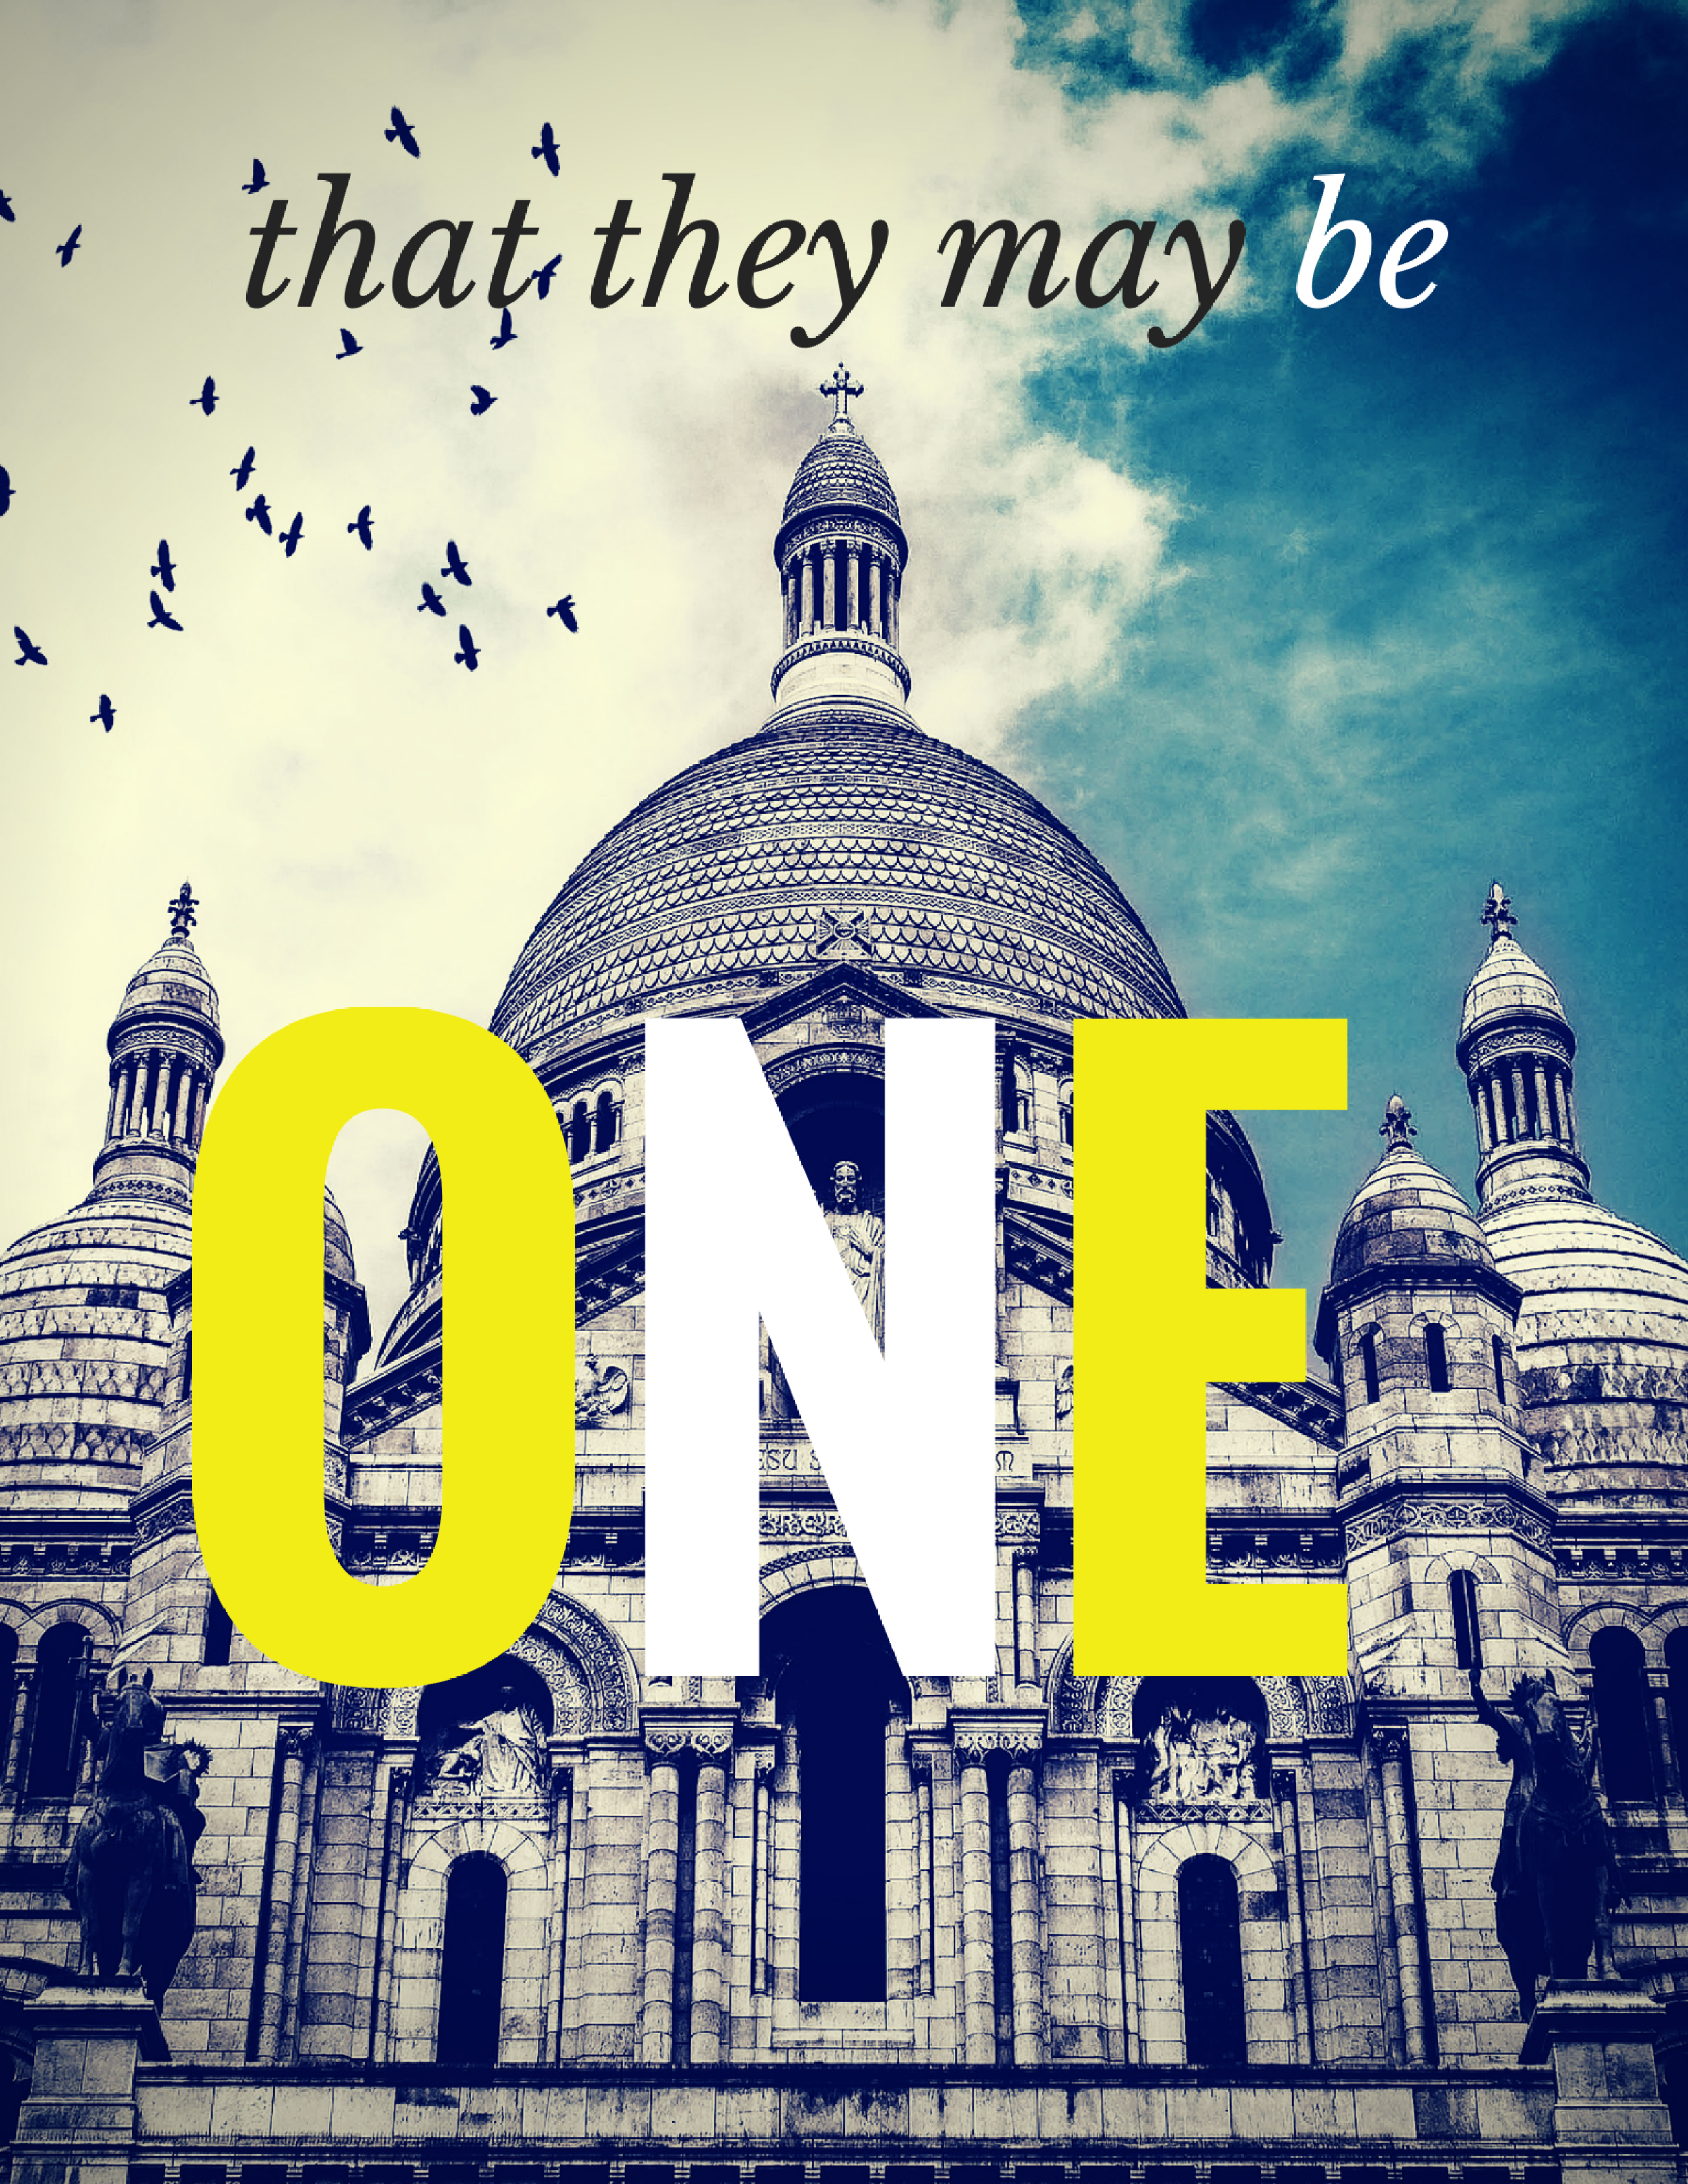 One: A small group curriculum - This curriculum provides a theological overview of ecumenism and invites participants to consider how they can live out the unity Jesus calls his followers to in their lives and churches.